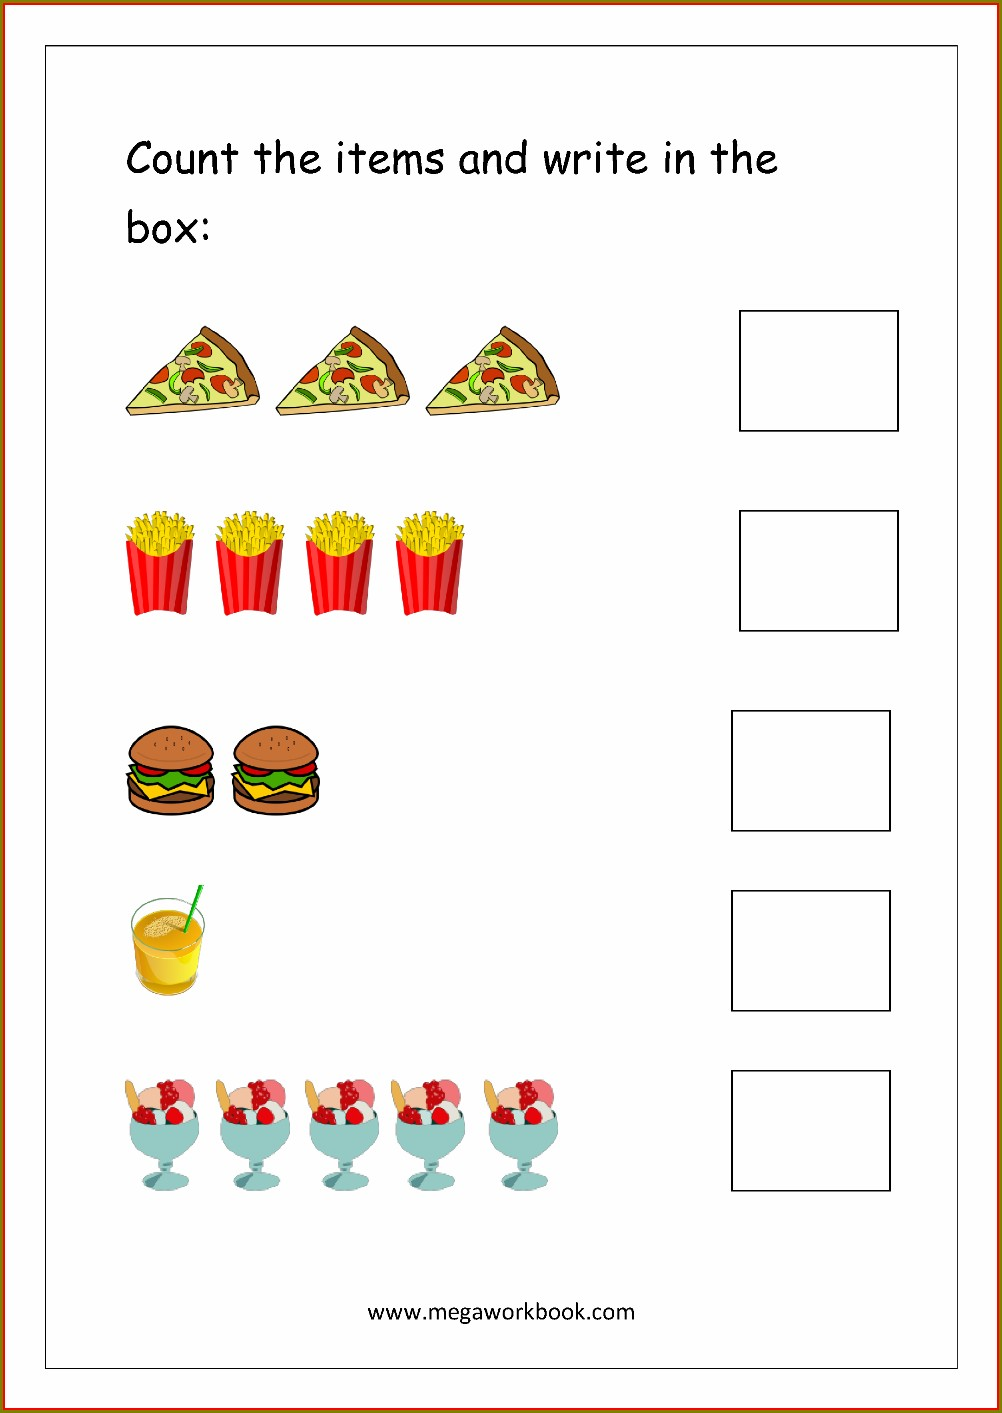 Spelling Cvc Words Worksheets